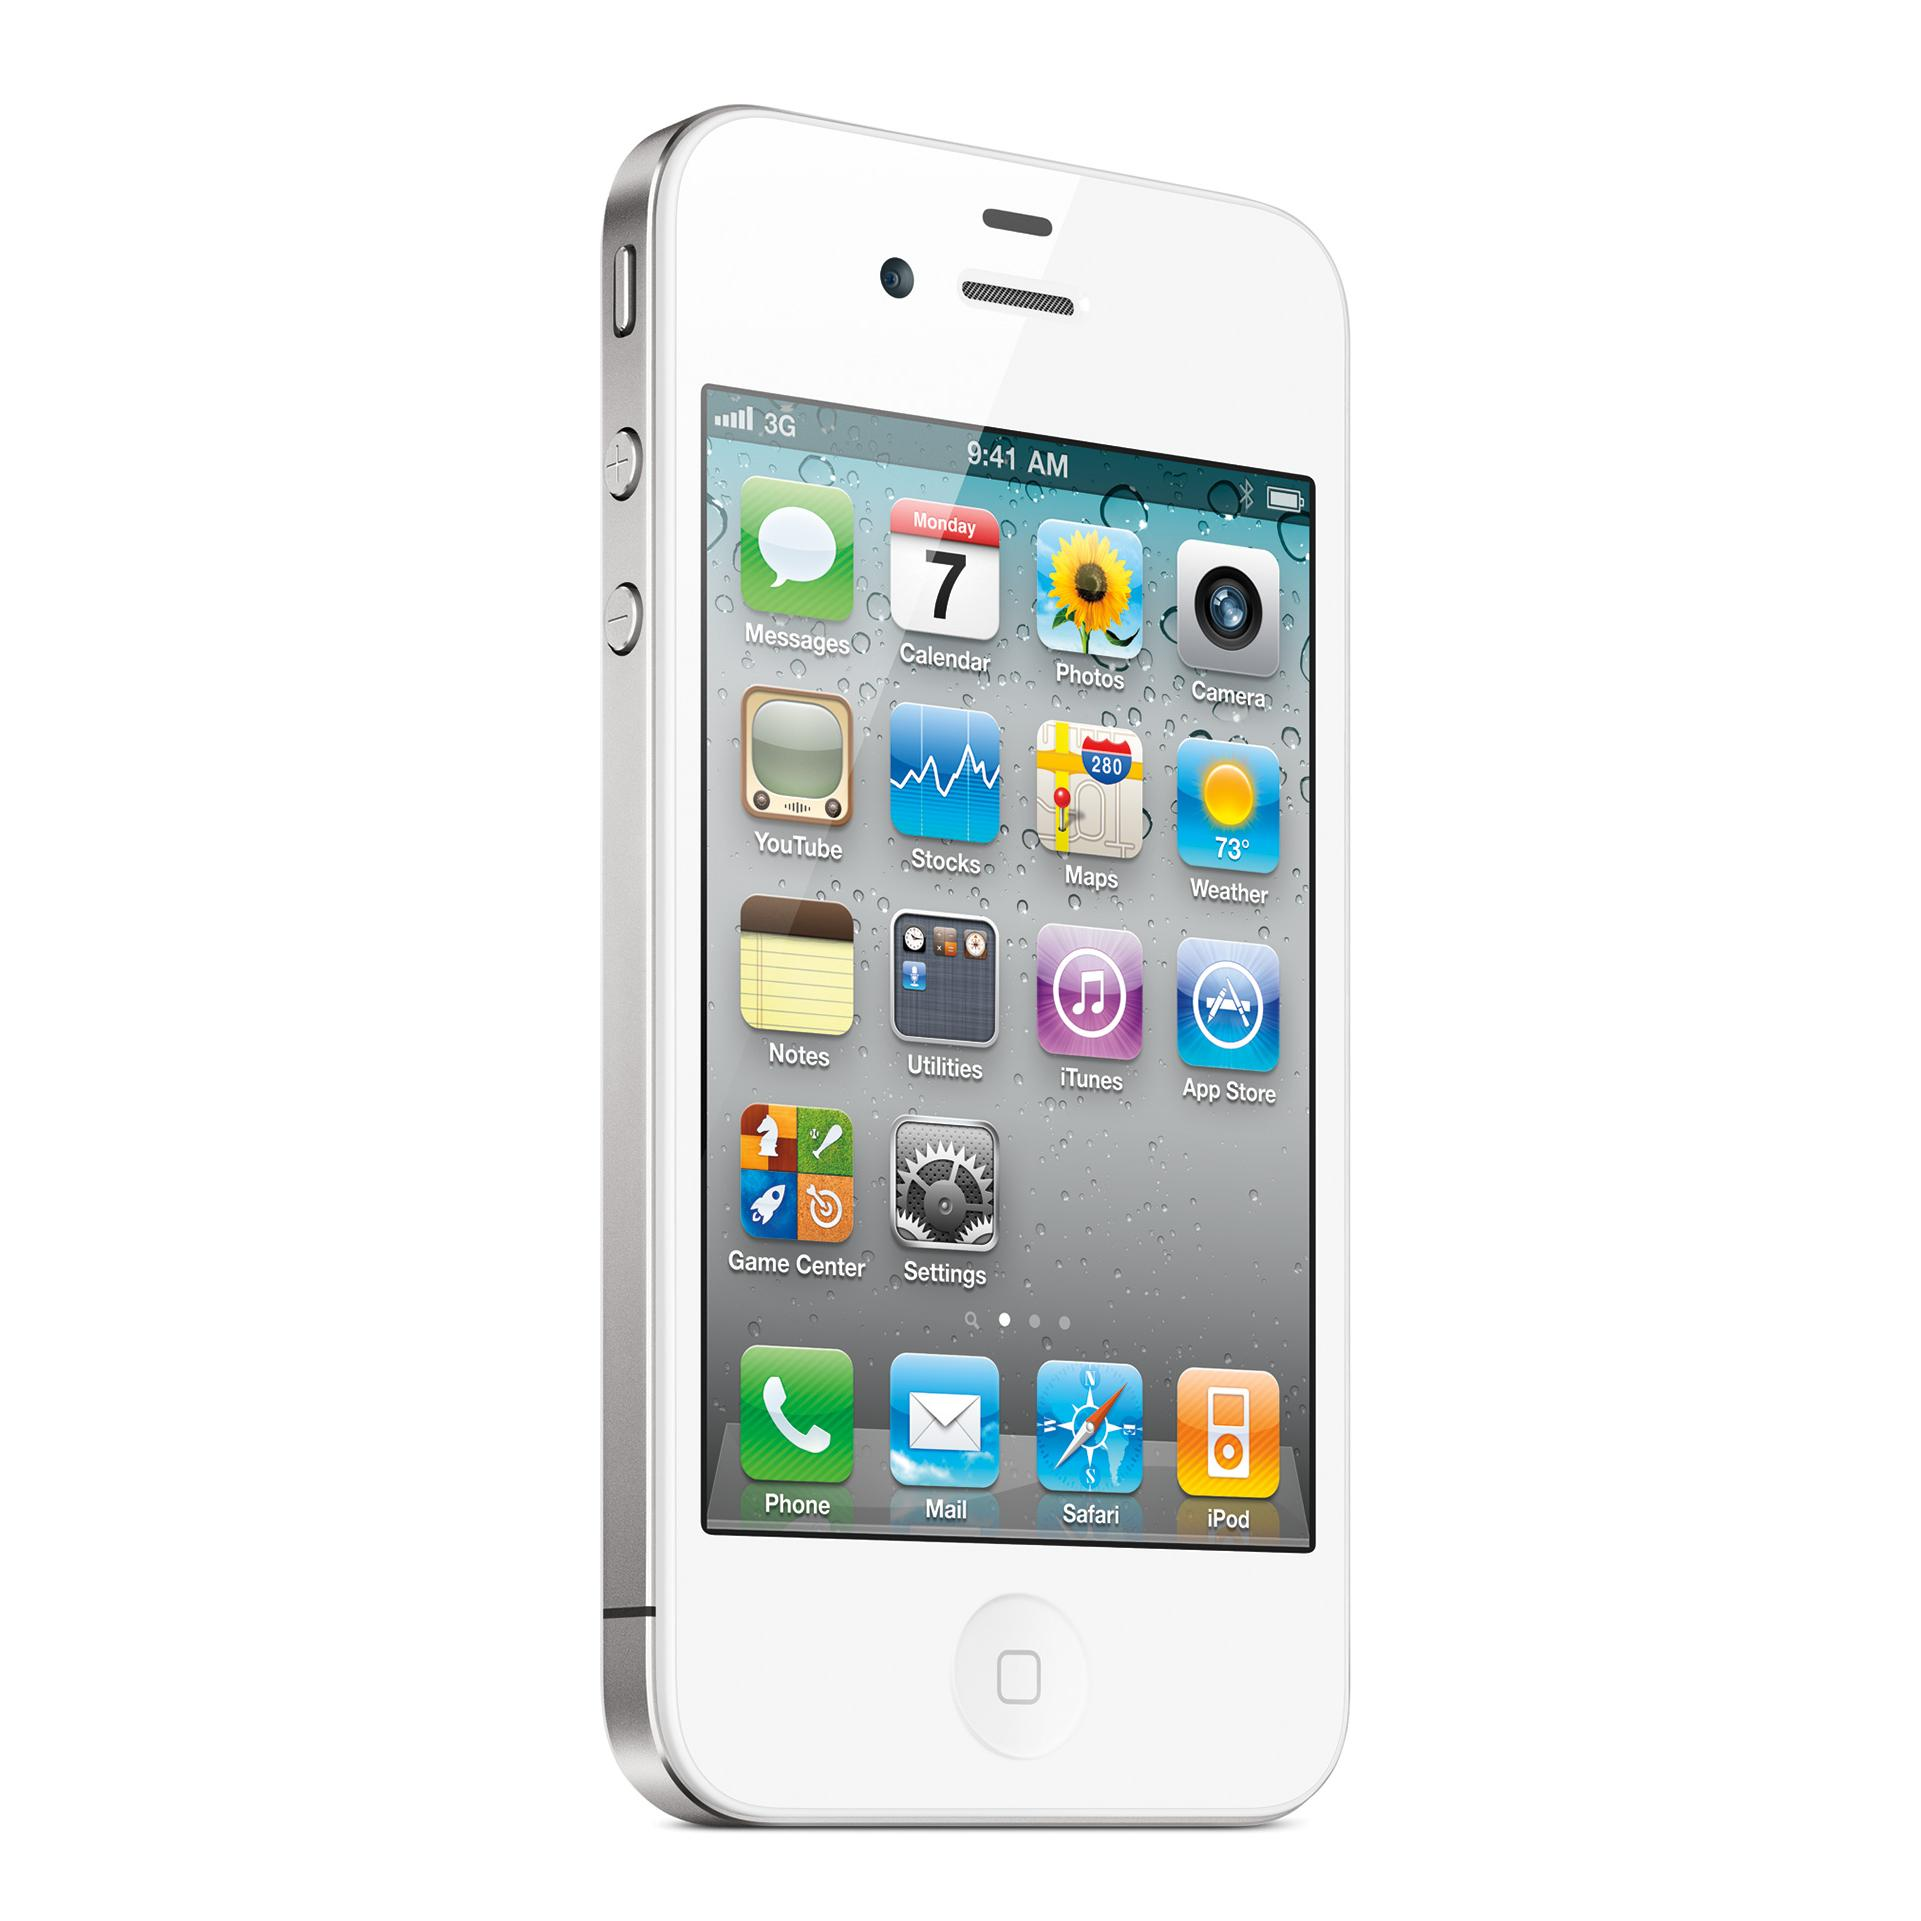 iPhone 4S 8 Gb - Blanco - Libre